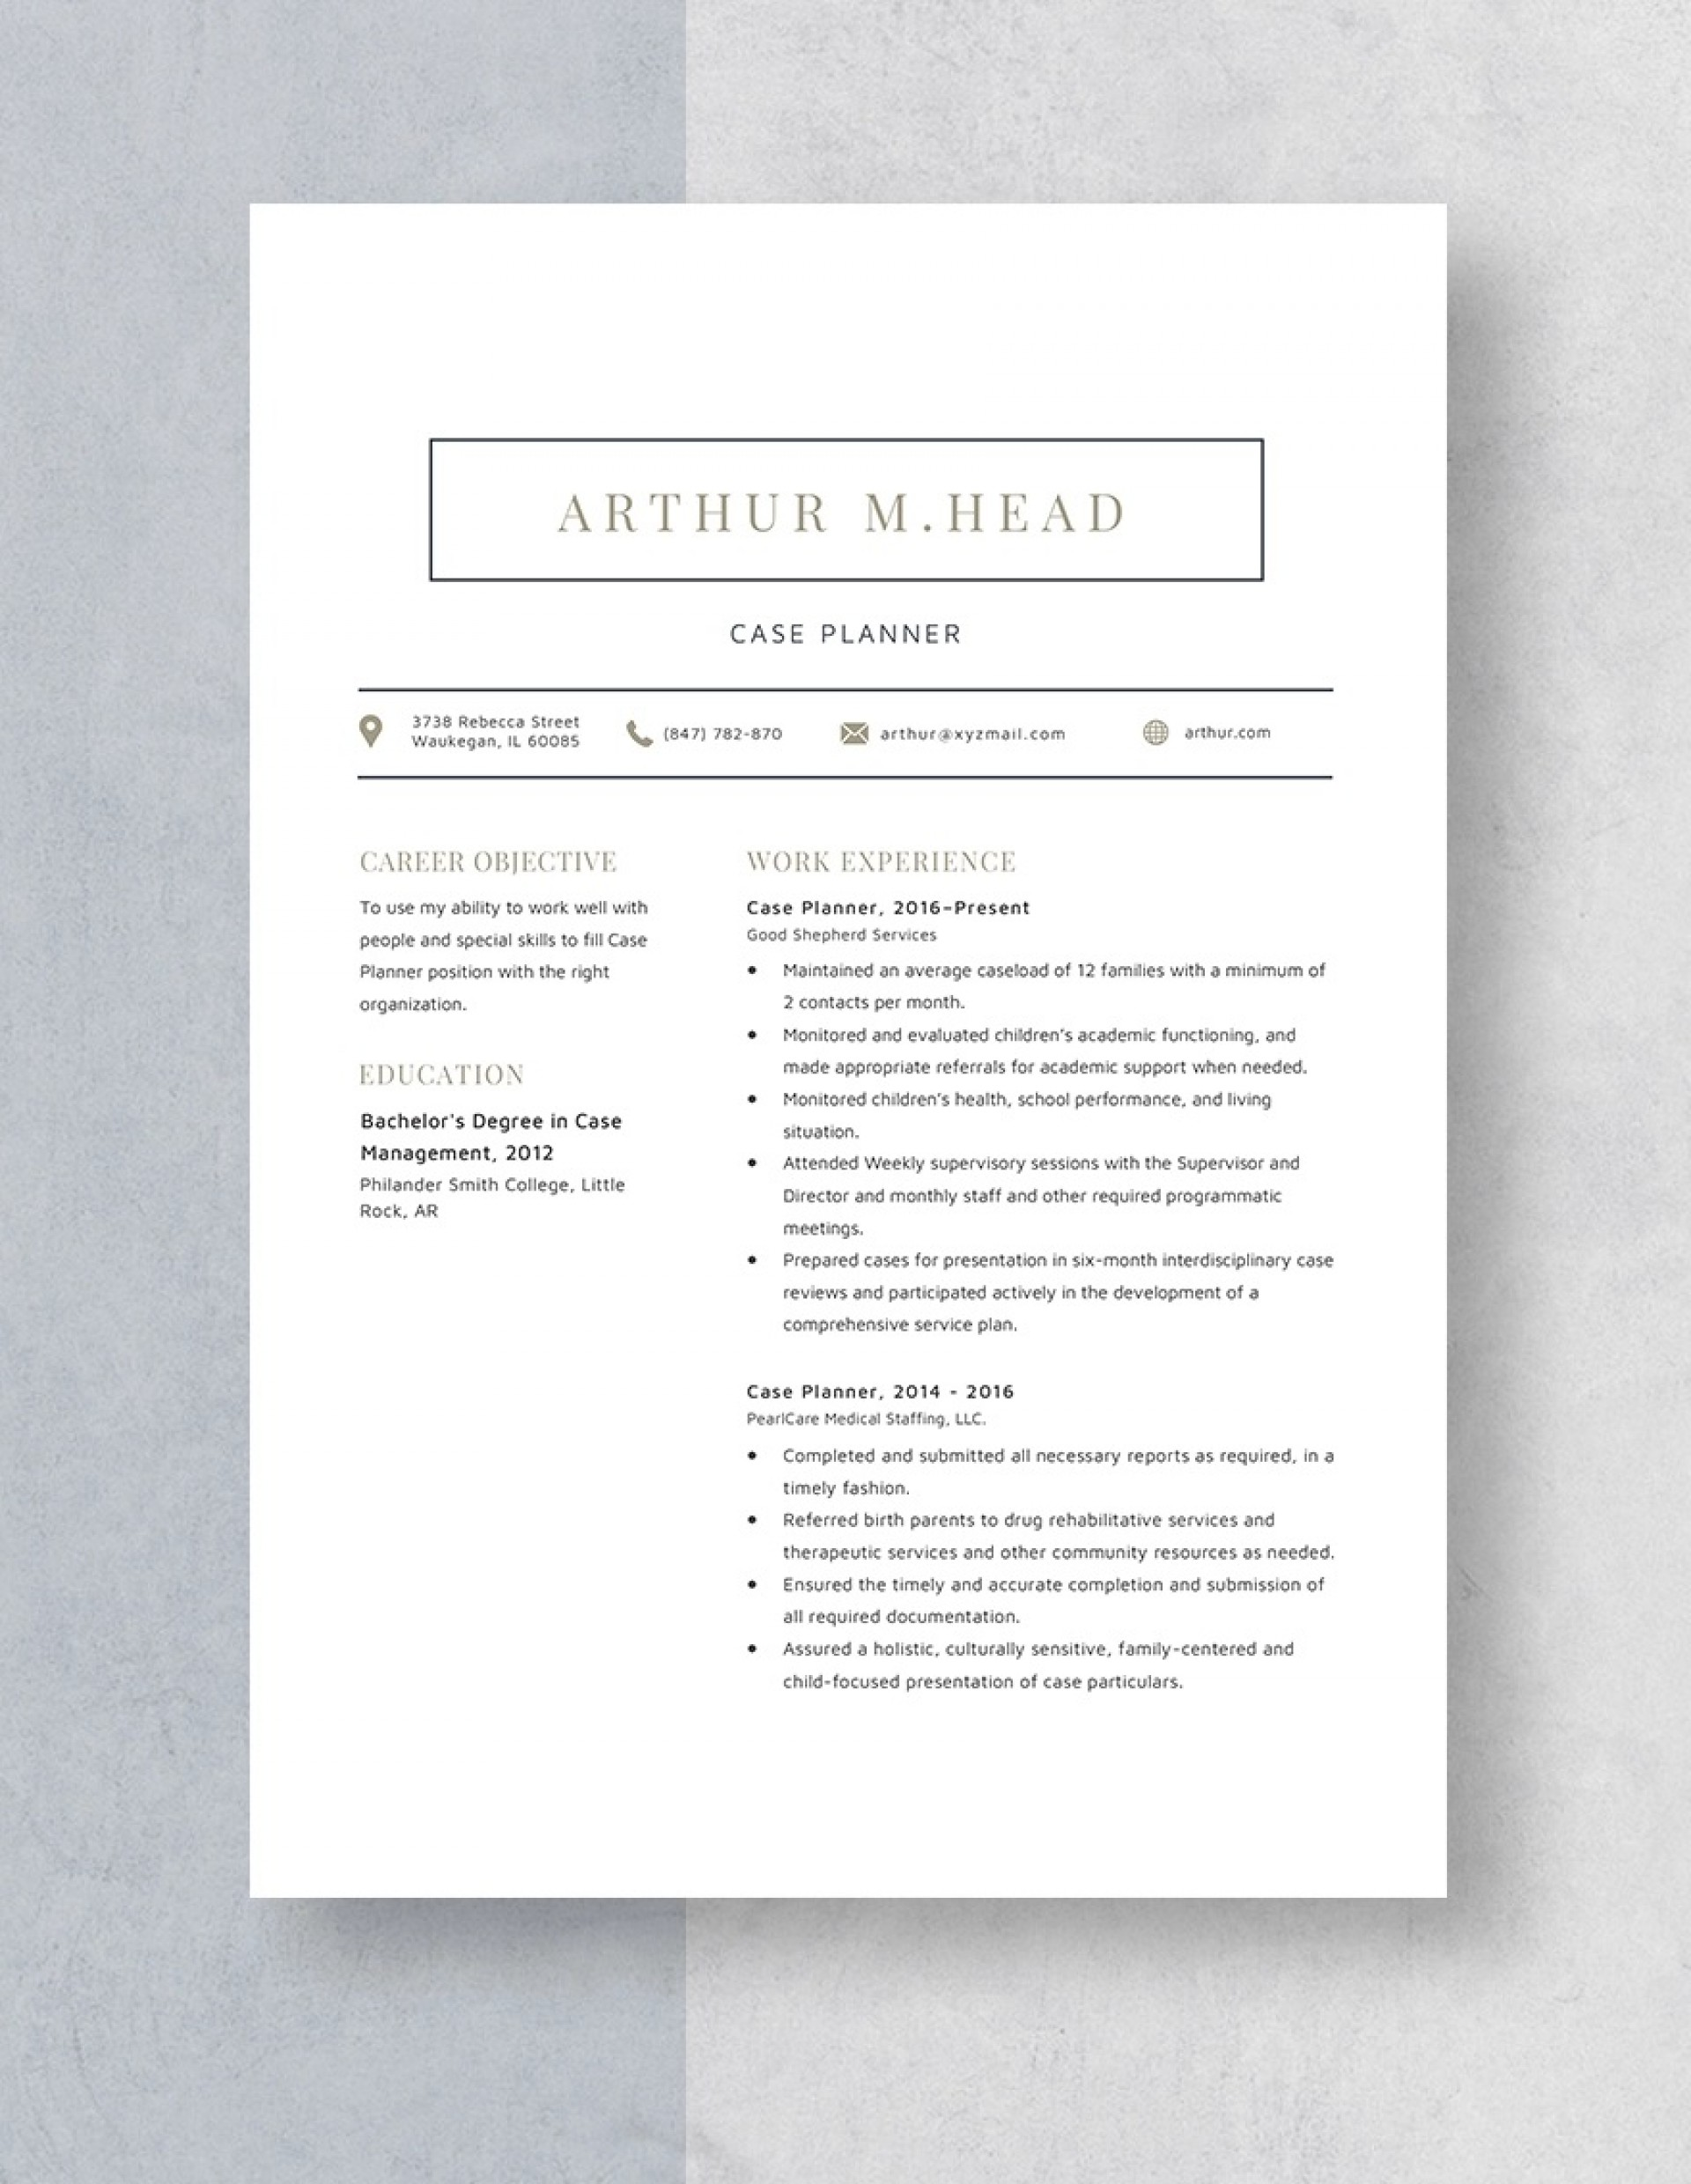 Template Case Planner Resume Idea 1920